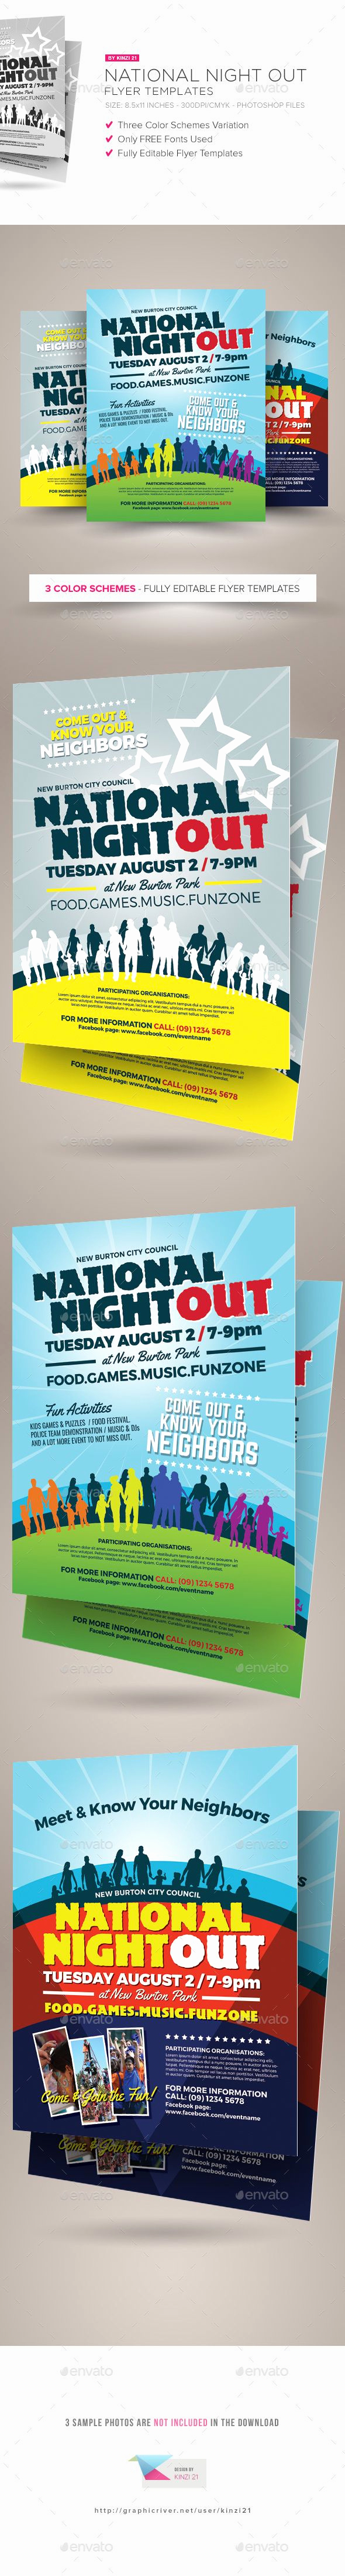 National Night Out Invitation Template Inspirational National Night Out Flyer Templates